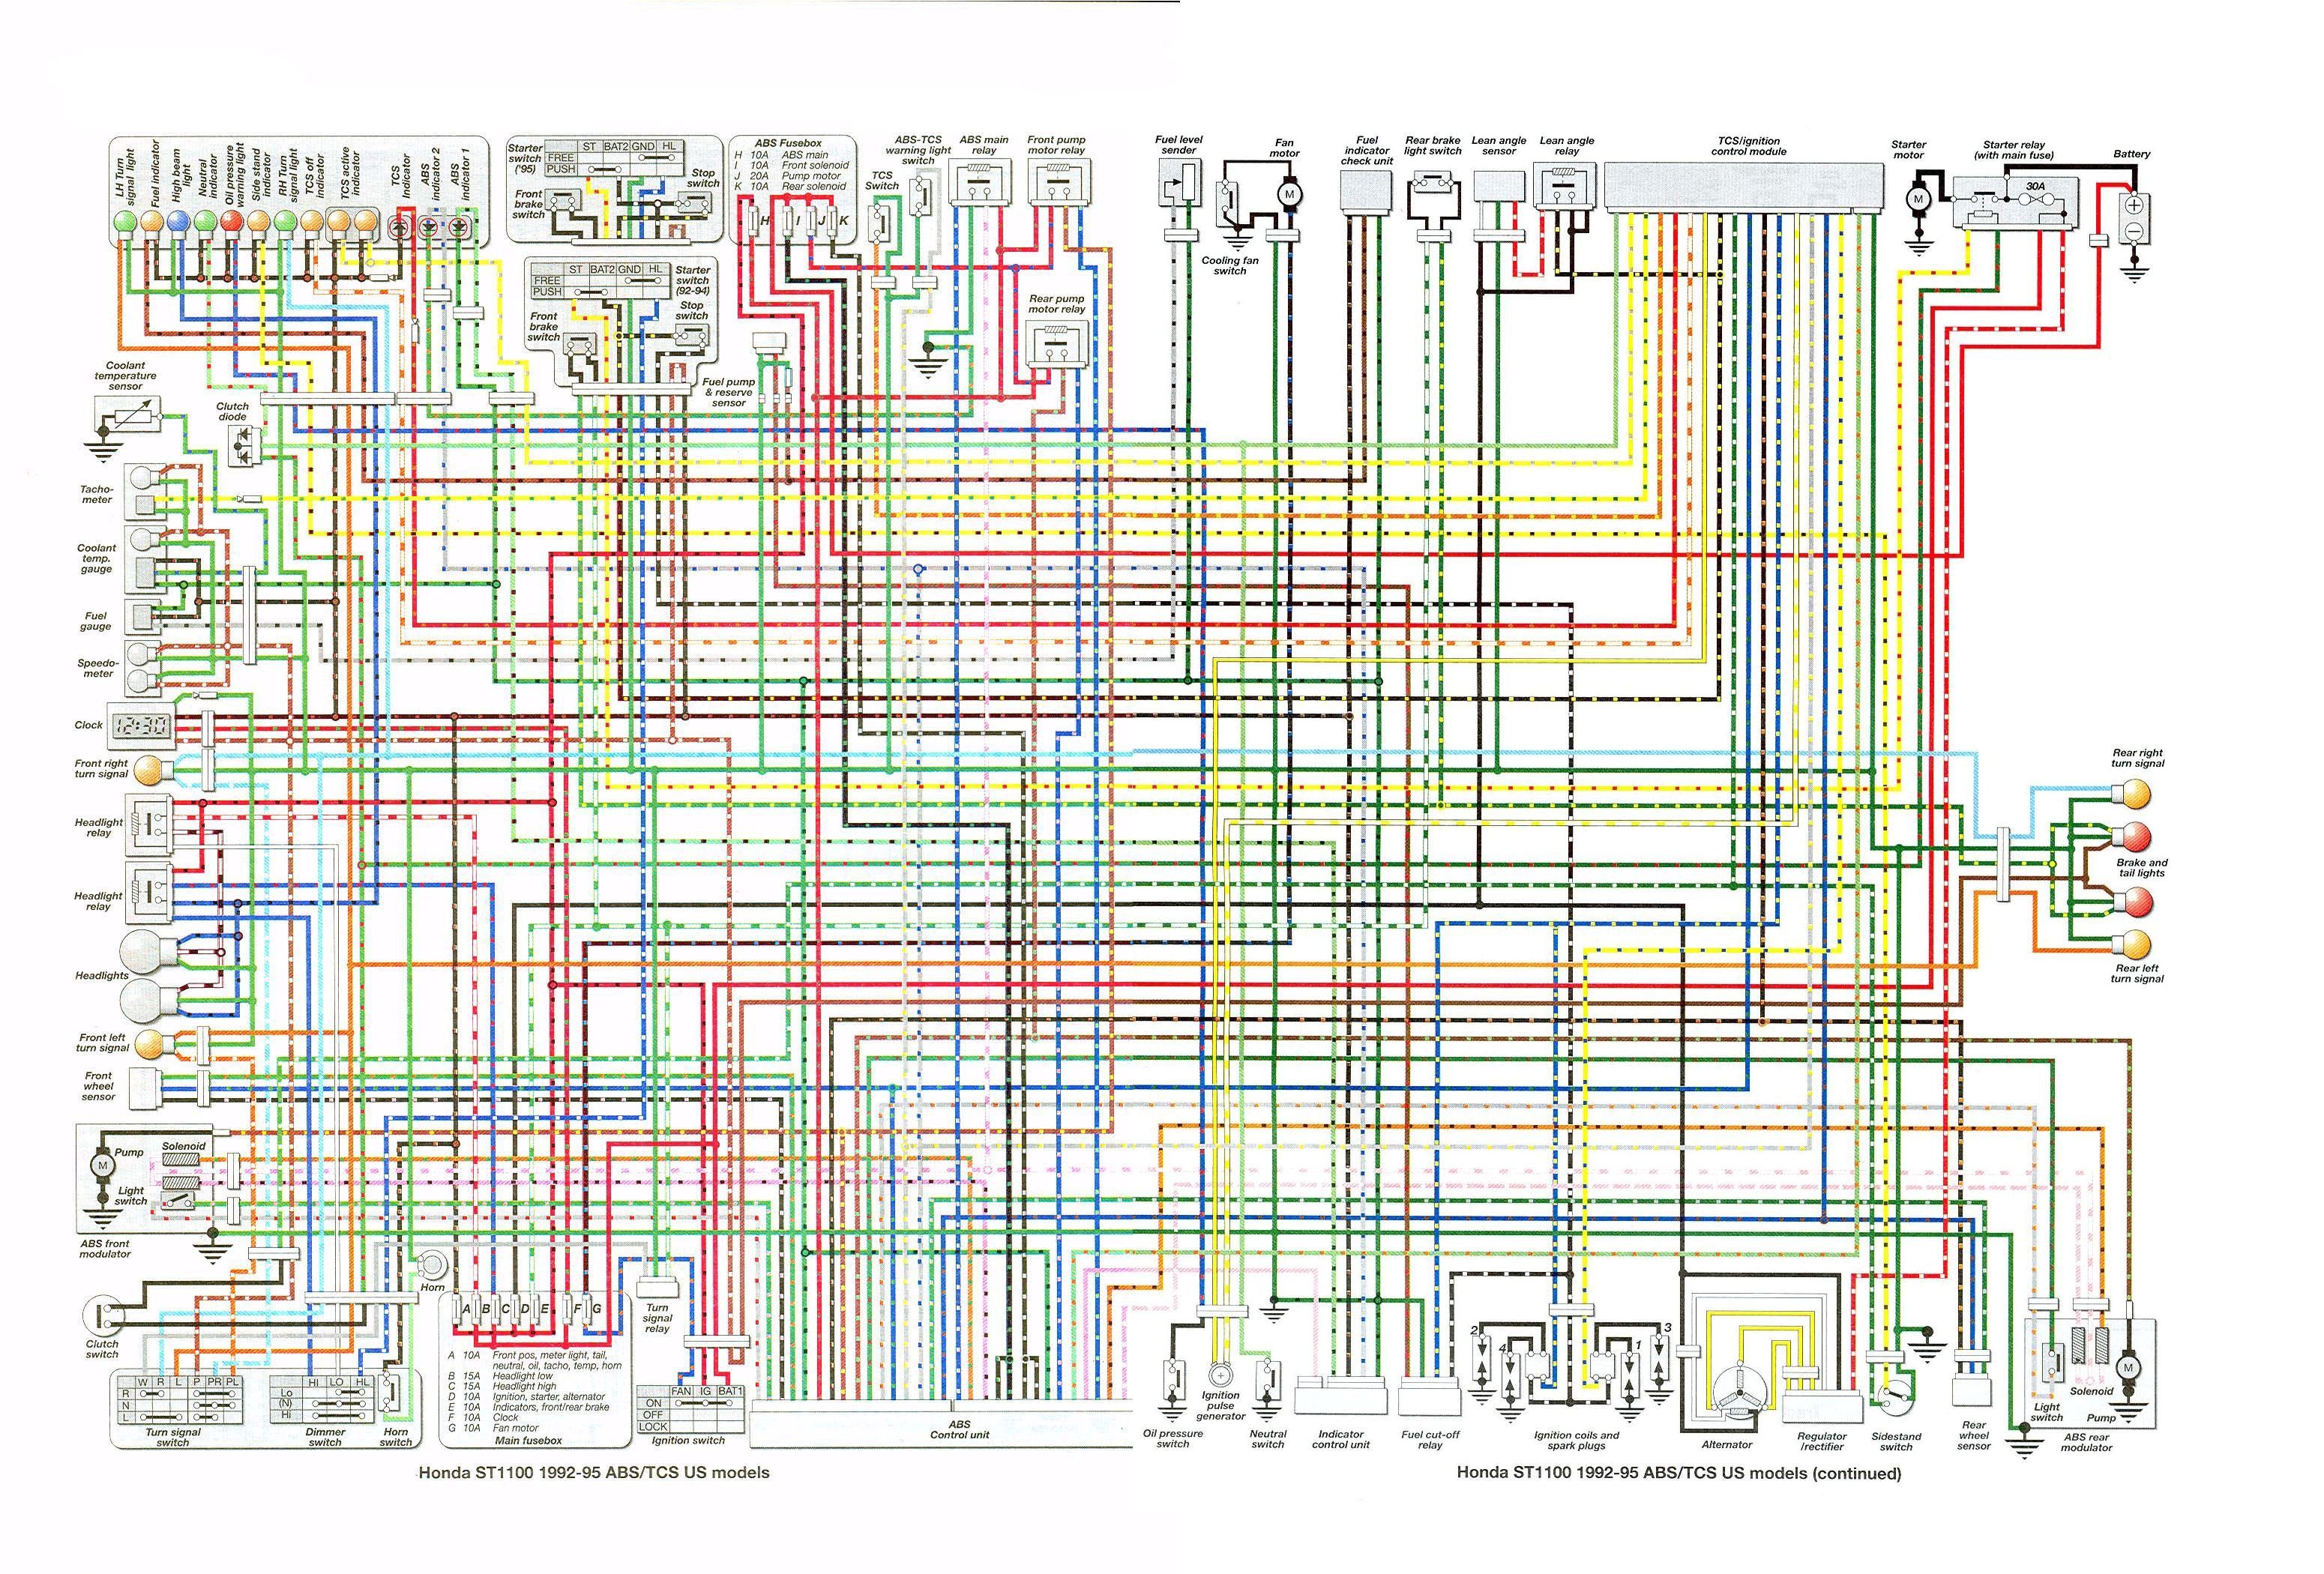 wiring diagrams colored st1100 wiring diagram for starter solenoid wiring diagram for st